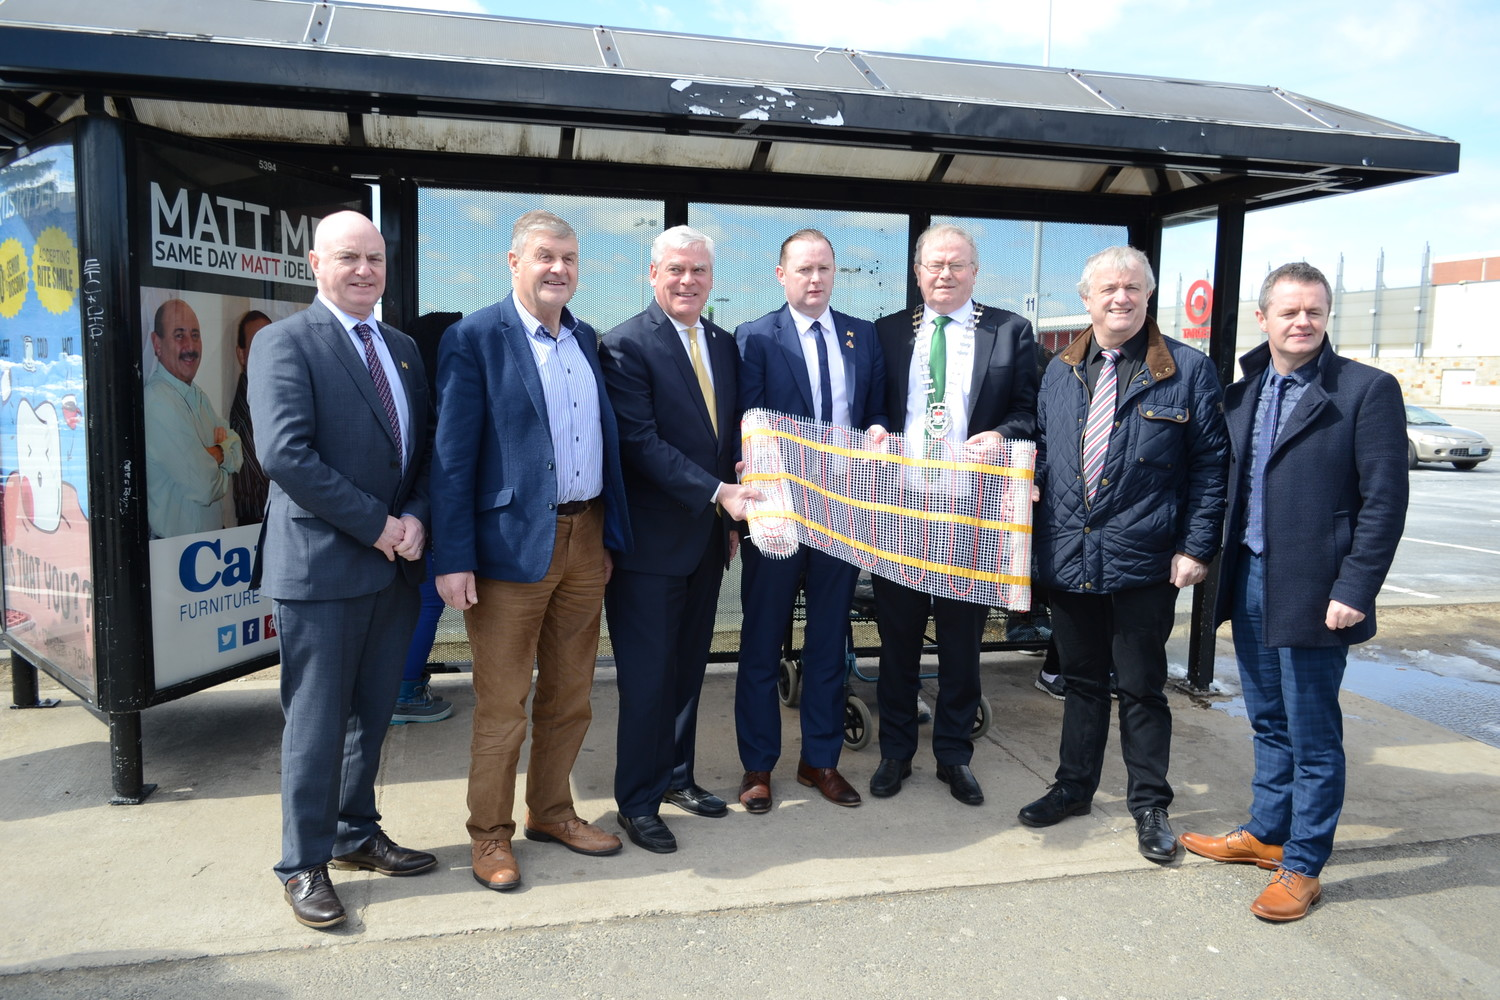 BUS STOP PHOTO OP: (l-r) - Peter Hynes, Chief Executive, County Mayo; Mayo County Councillor Michael Holmes, Mayor Avedisian; Brian Hopkins, CEO, ezewarm;  County Mayo Mayor Richard Finn; Mayo County Councillor Gerry Coyle; John Magee, Head of Local Enterprise Office (LEO) Mayo